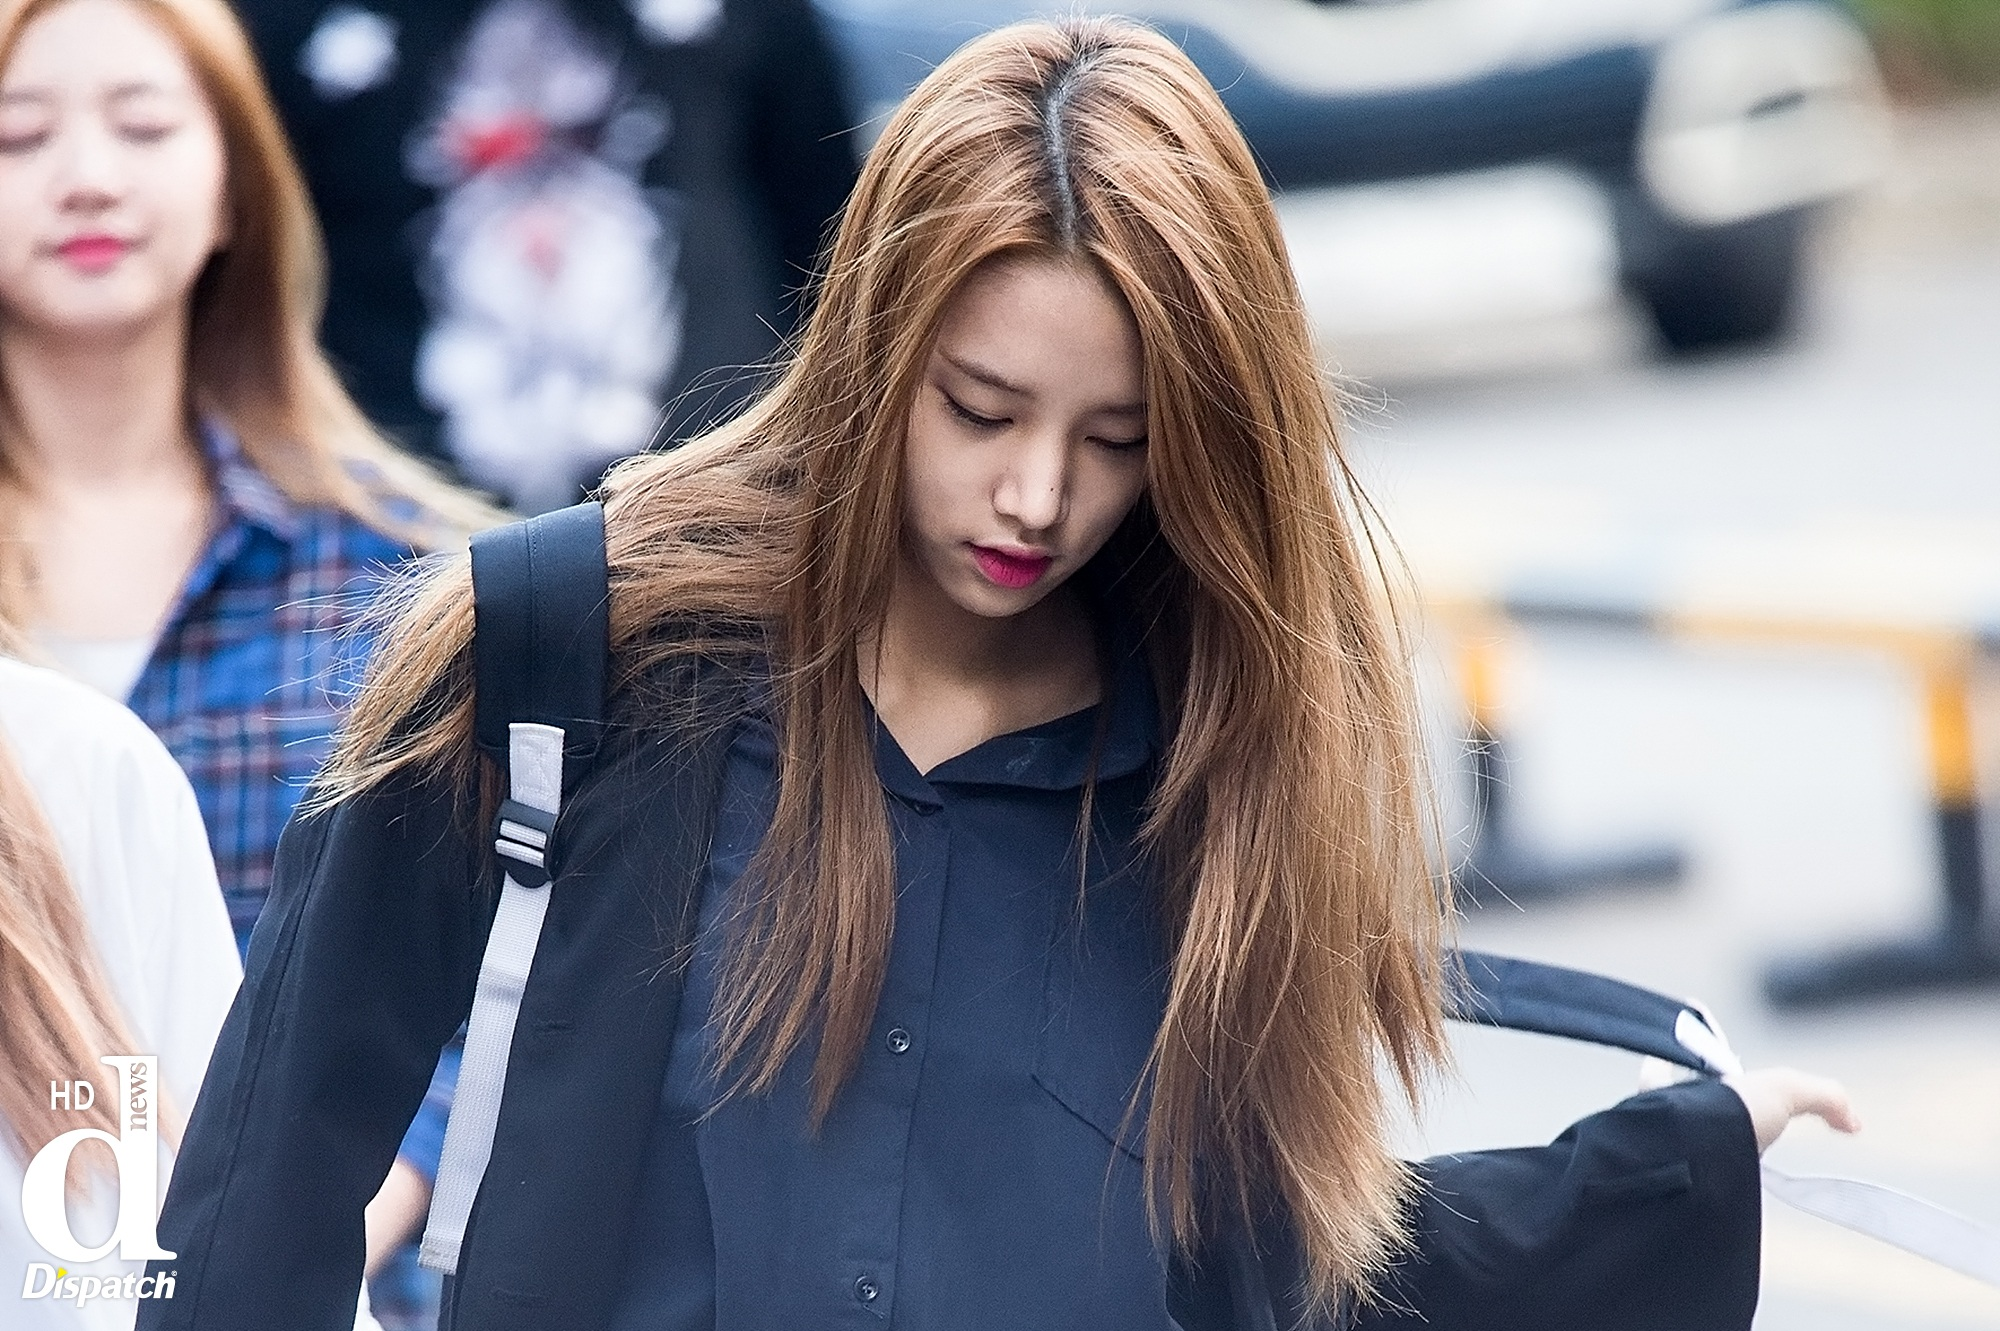 LABOUMs Solbin Rushed To The Emergency Room Following Performance